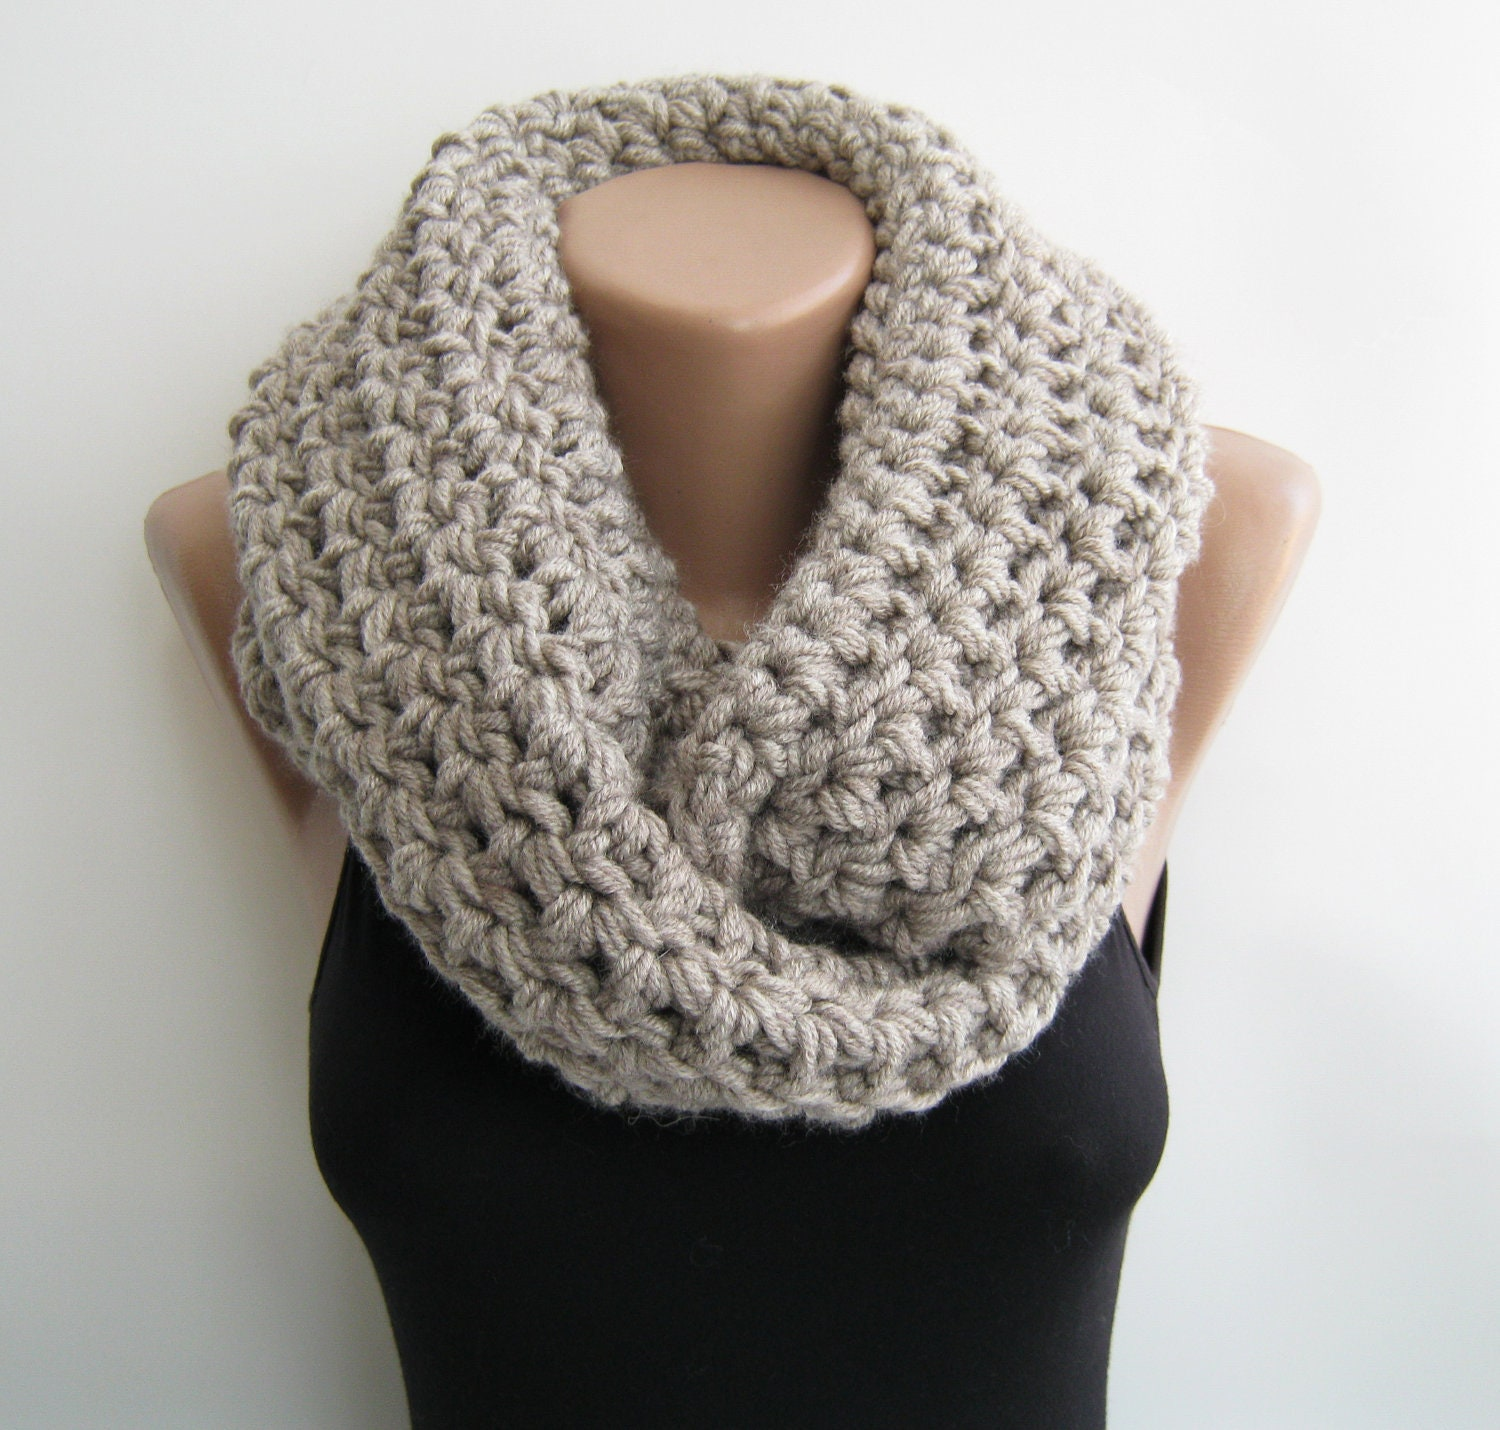 Free Crochet Pattern For Chunky Scarf : Crochet infinity scarf oat meal chunky circle by sascarves ...